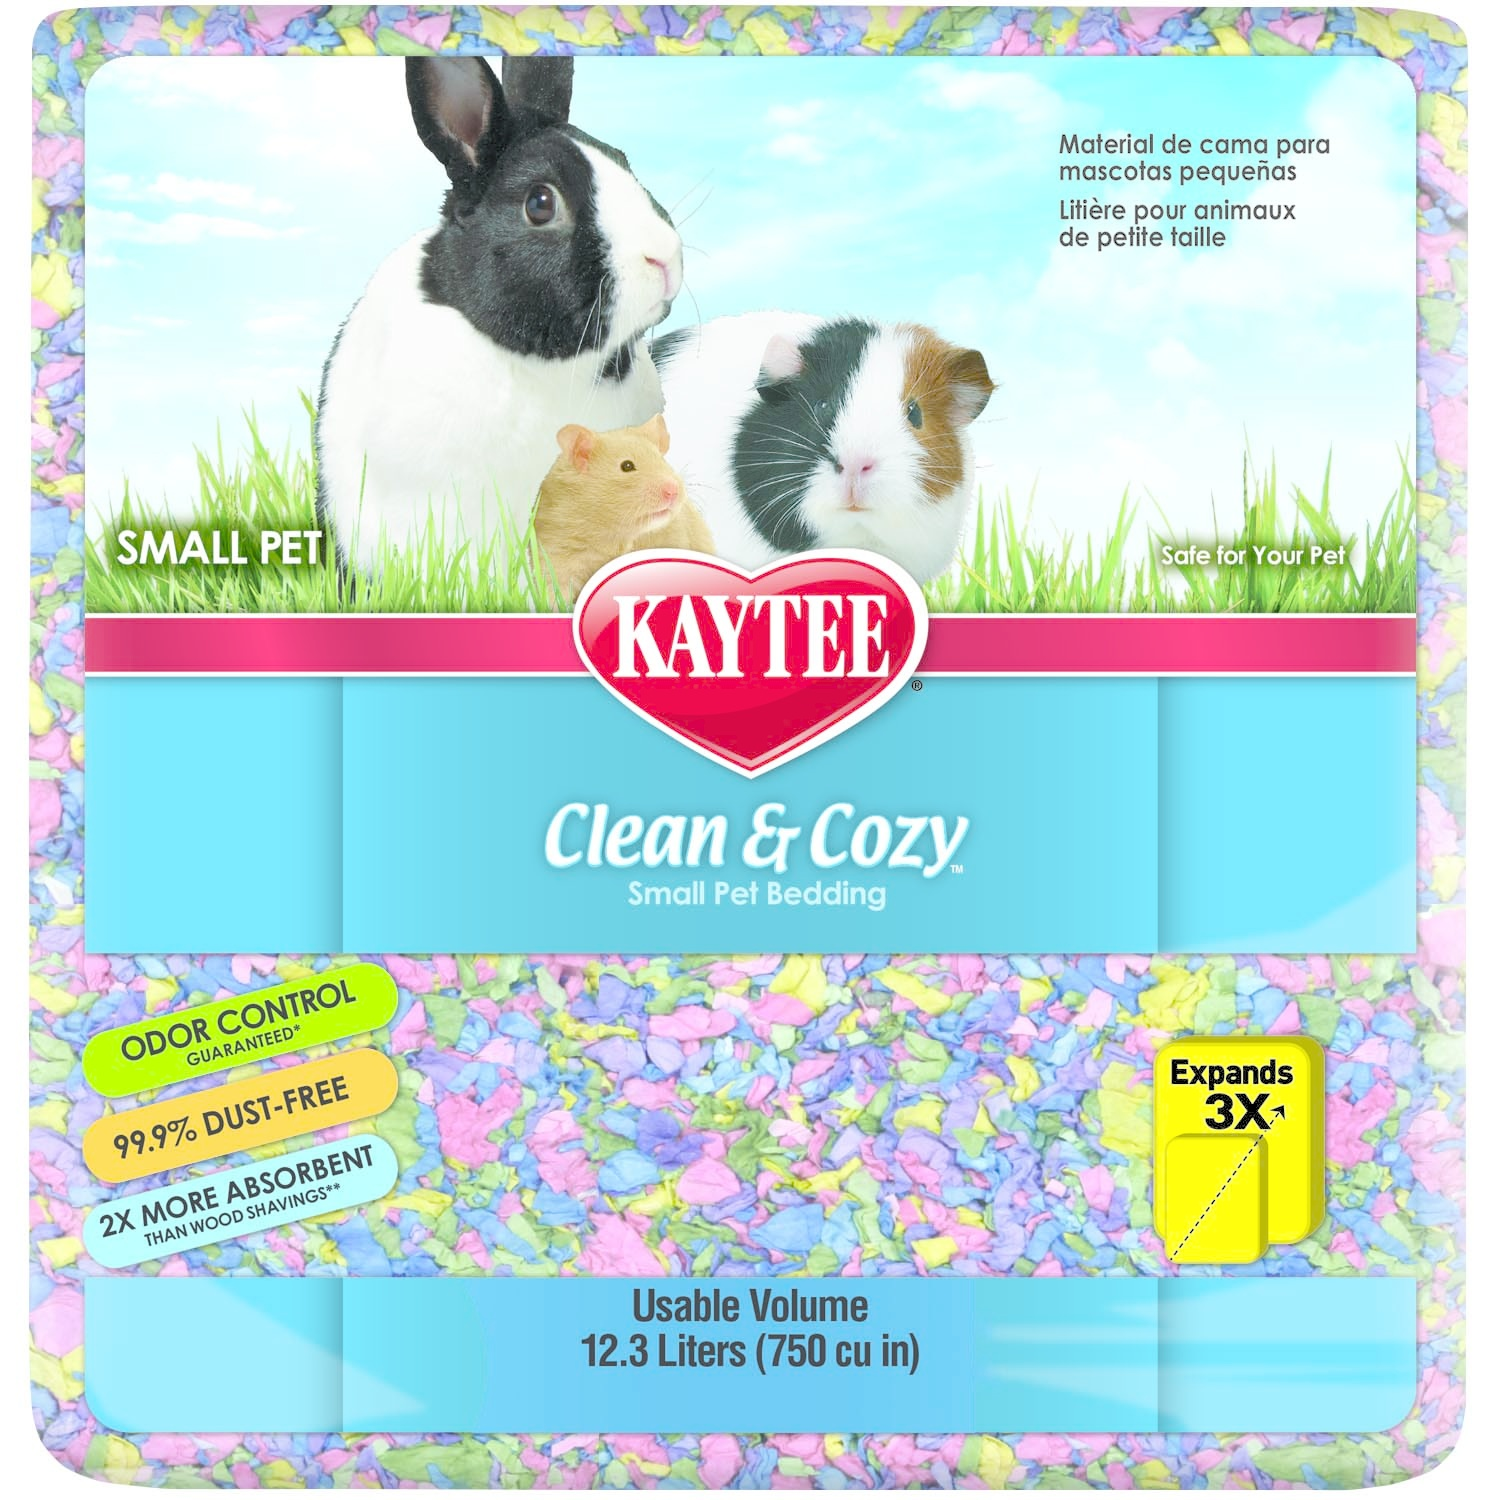 Kaytee Kaytee Bedding Clean and Cozy Birthday Cake 12.3 Liter Product Image